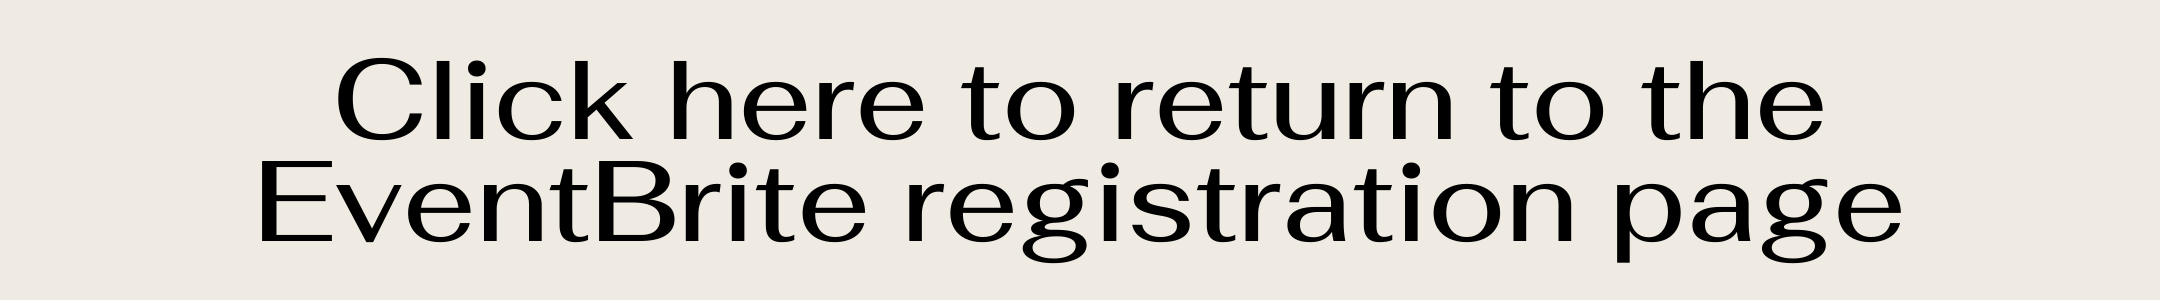 Click here to return to the EventBrite registration page